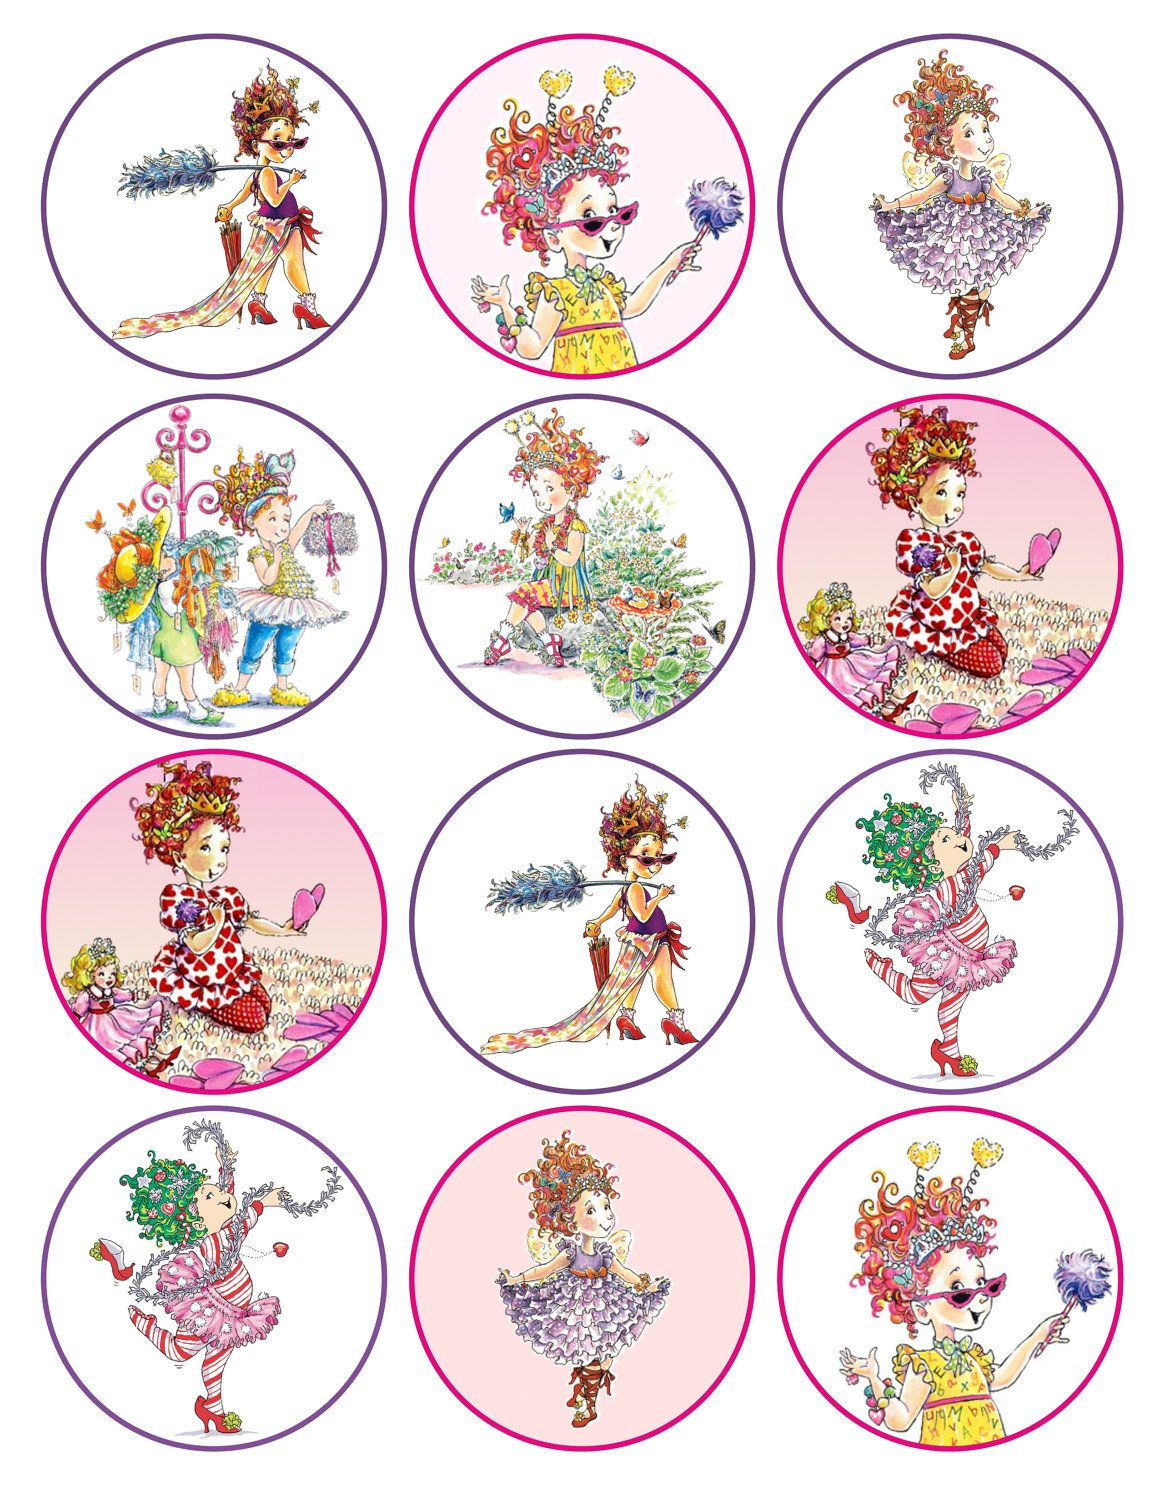 fancy nancy printable birthday party cupcake toppers favor tags via etsy  [ 1160 x 1500 Pixel ]